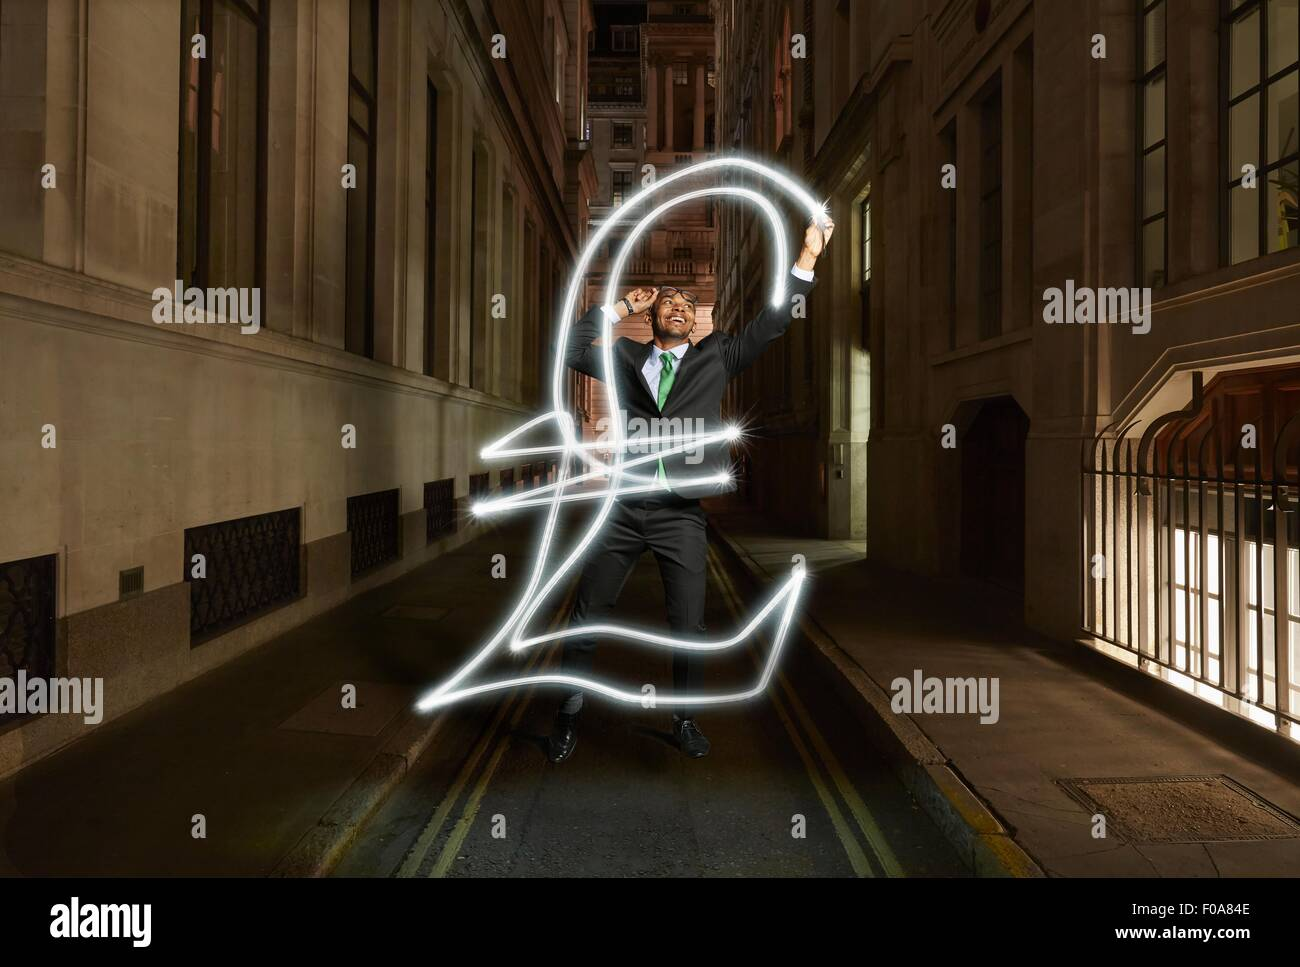 Young businessman light painting pound sterling symbol on city street at night, London, UK - Stock Image